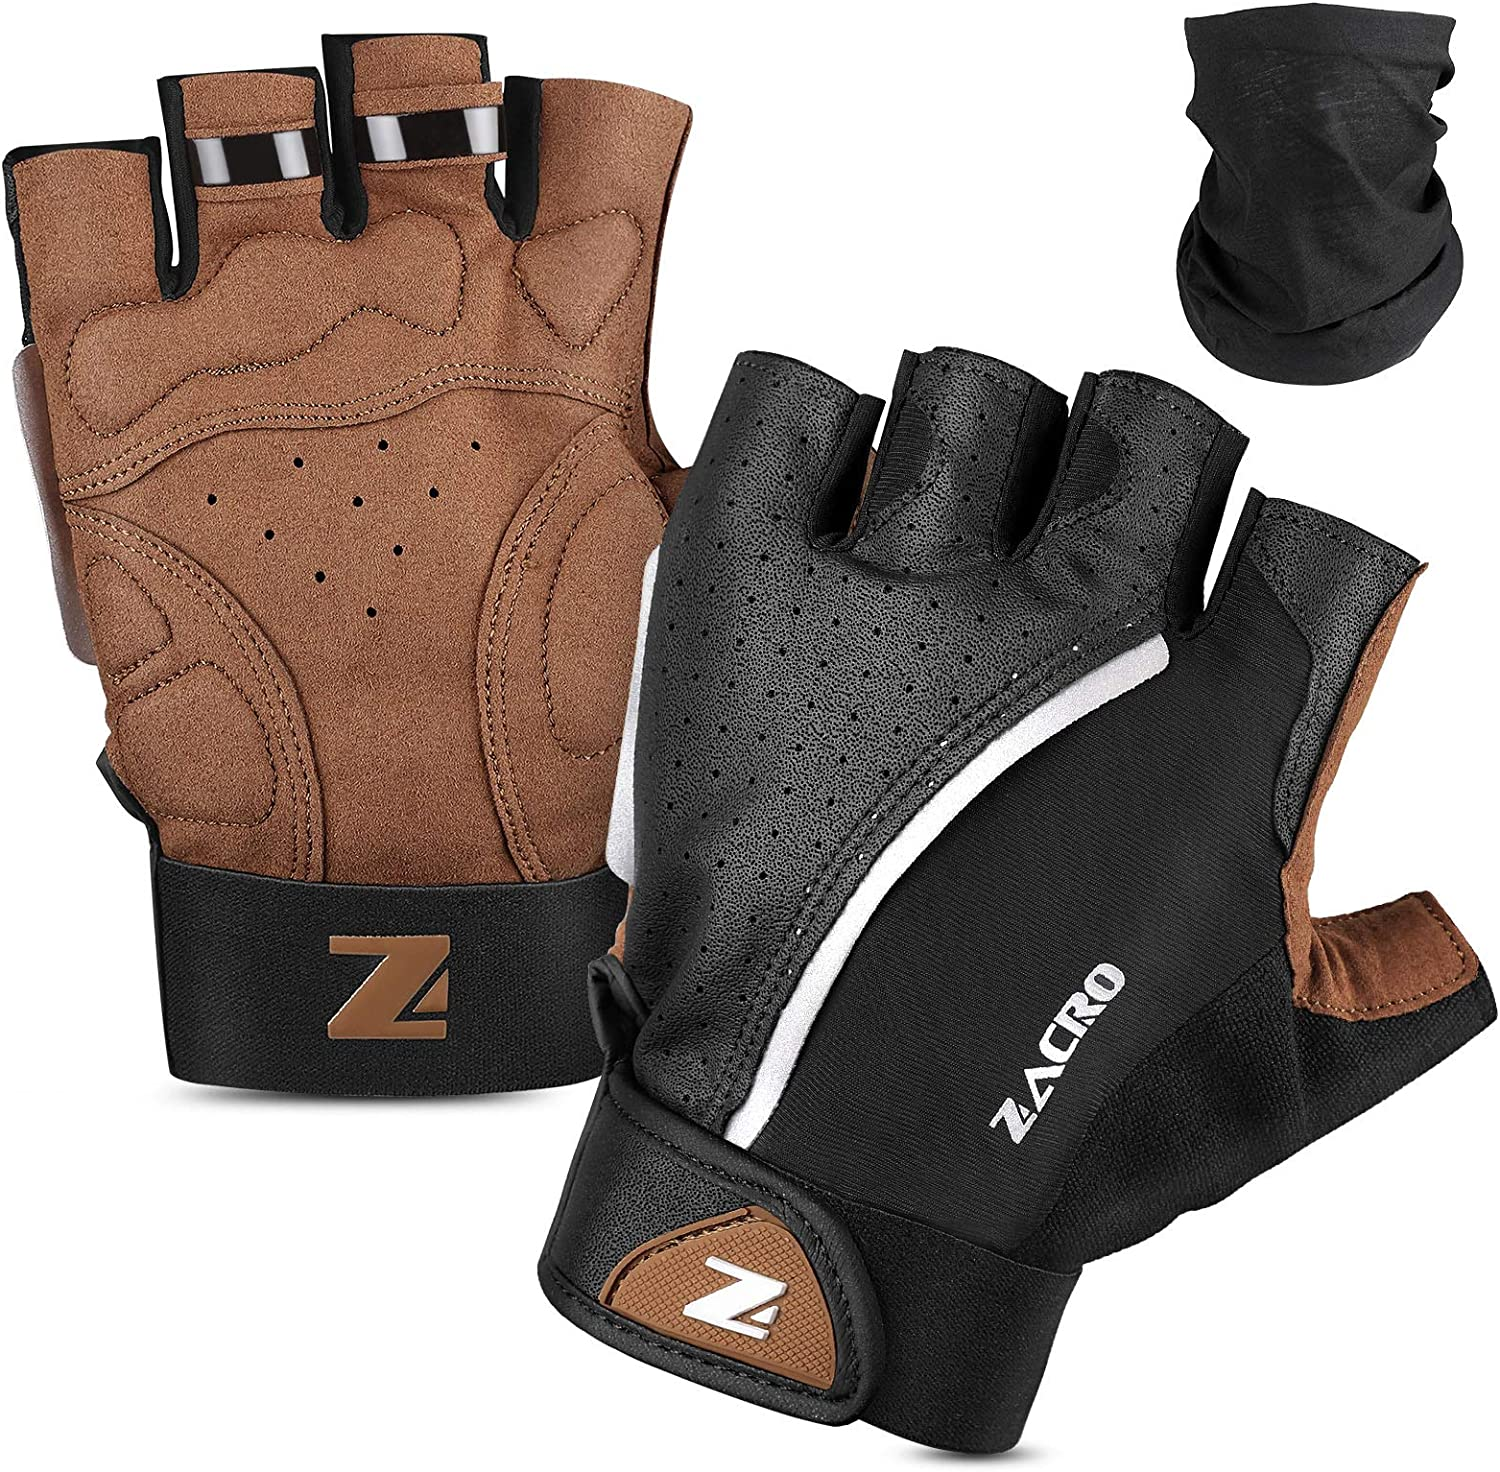 safety Zacro Cycling Gloves Half New product Finger Biking MTB Road Bicyc Glove DH